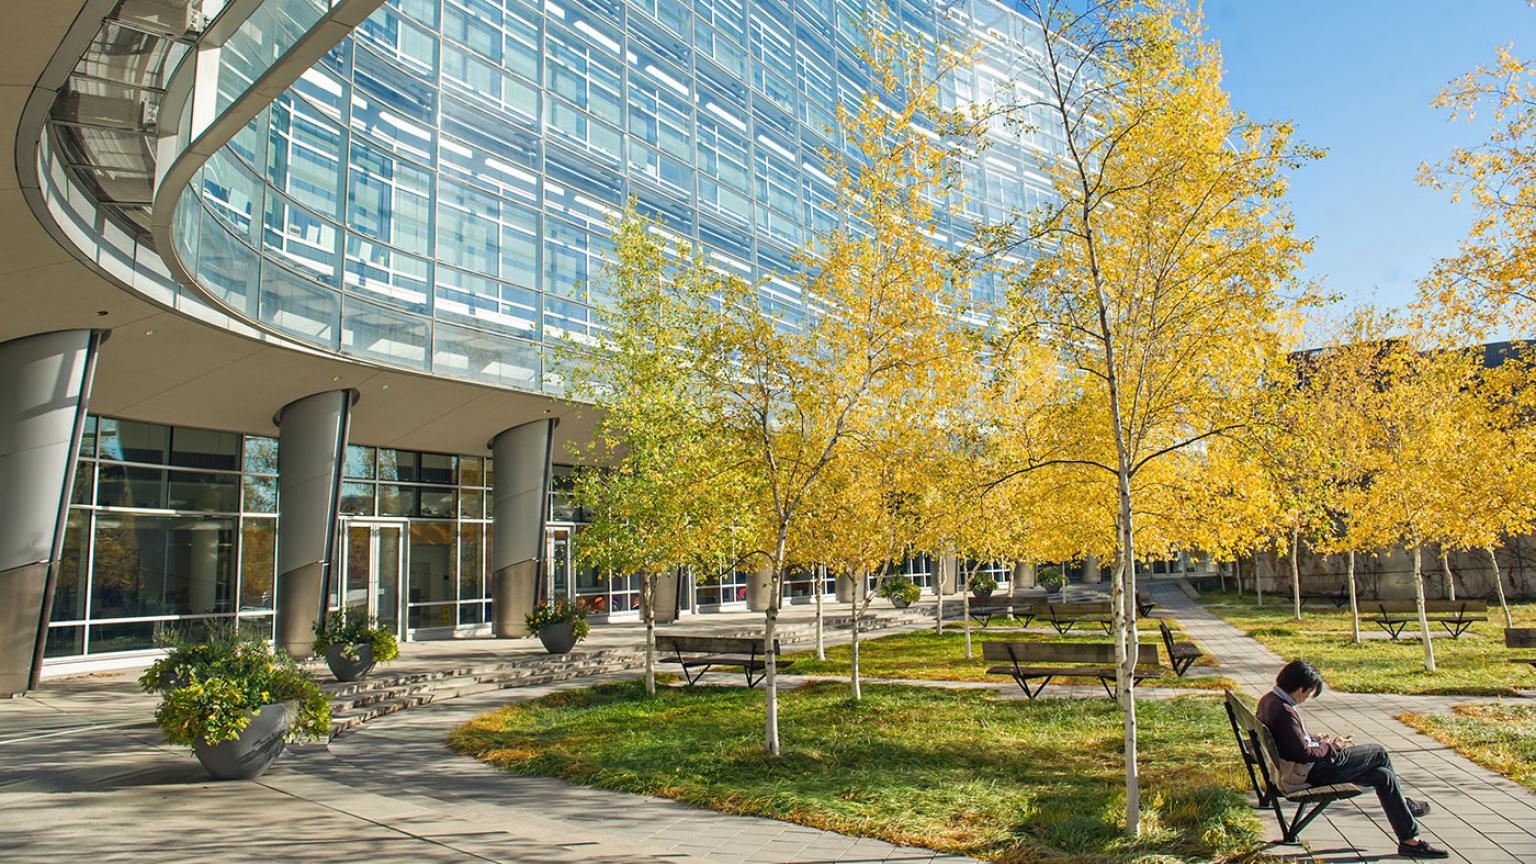 Exterior shot of Biomedical Science Research Building a researcher is sitting on a bench underneath a tree in bloom